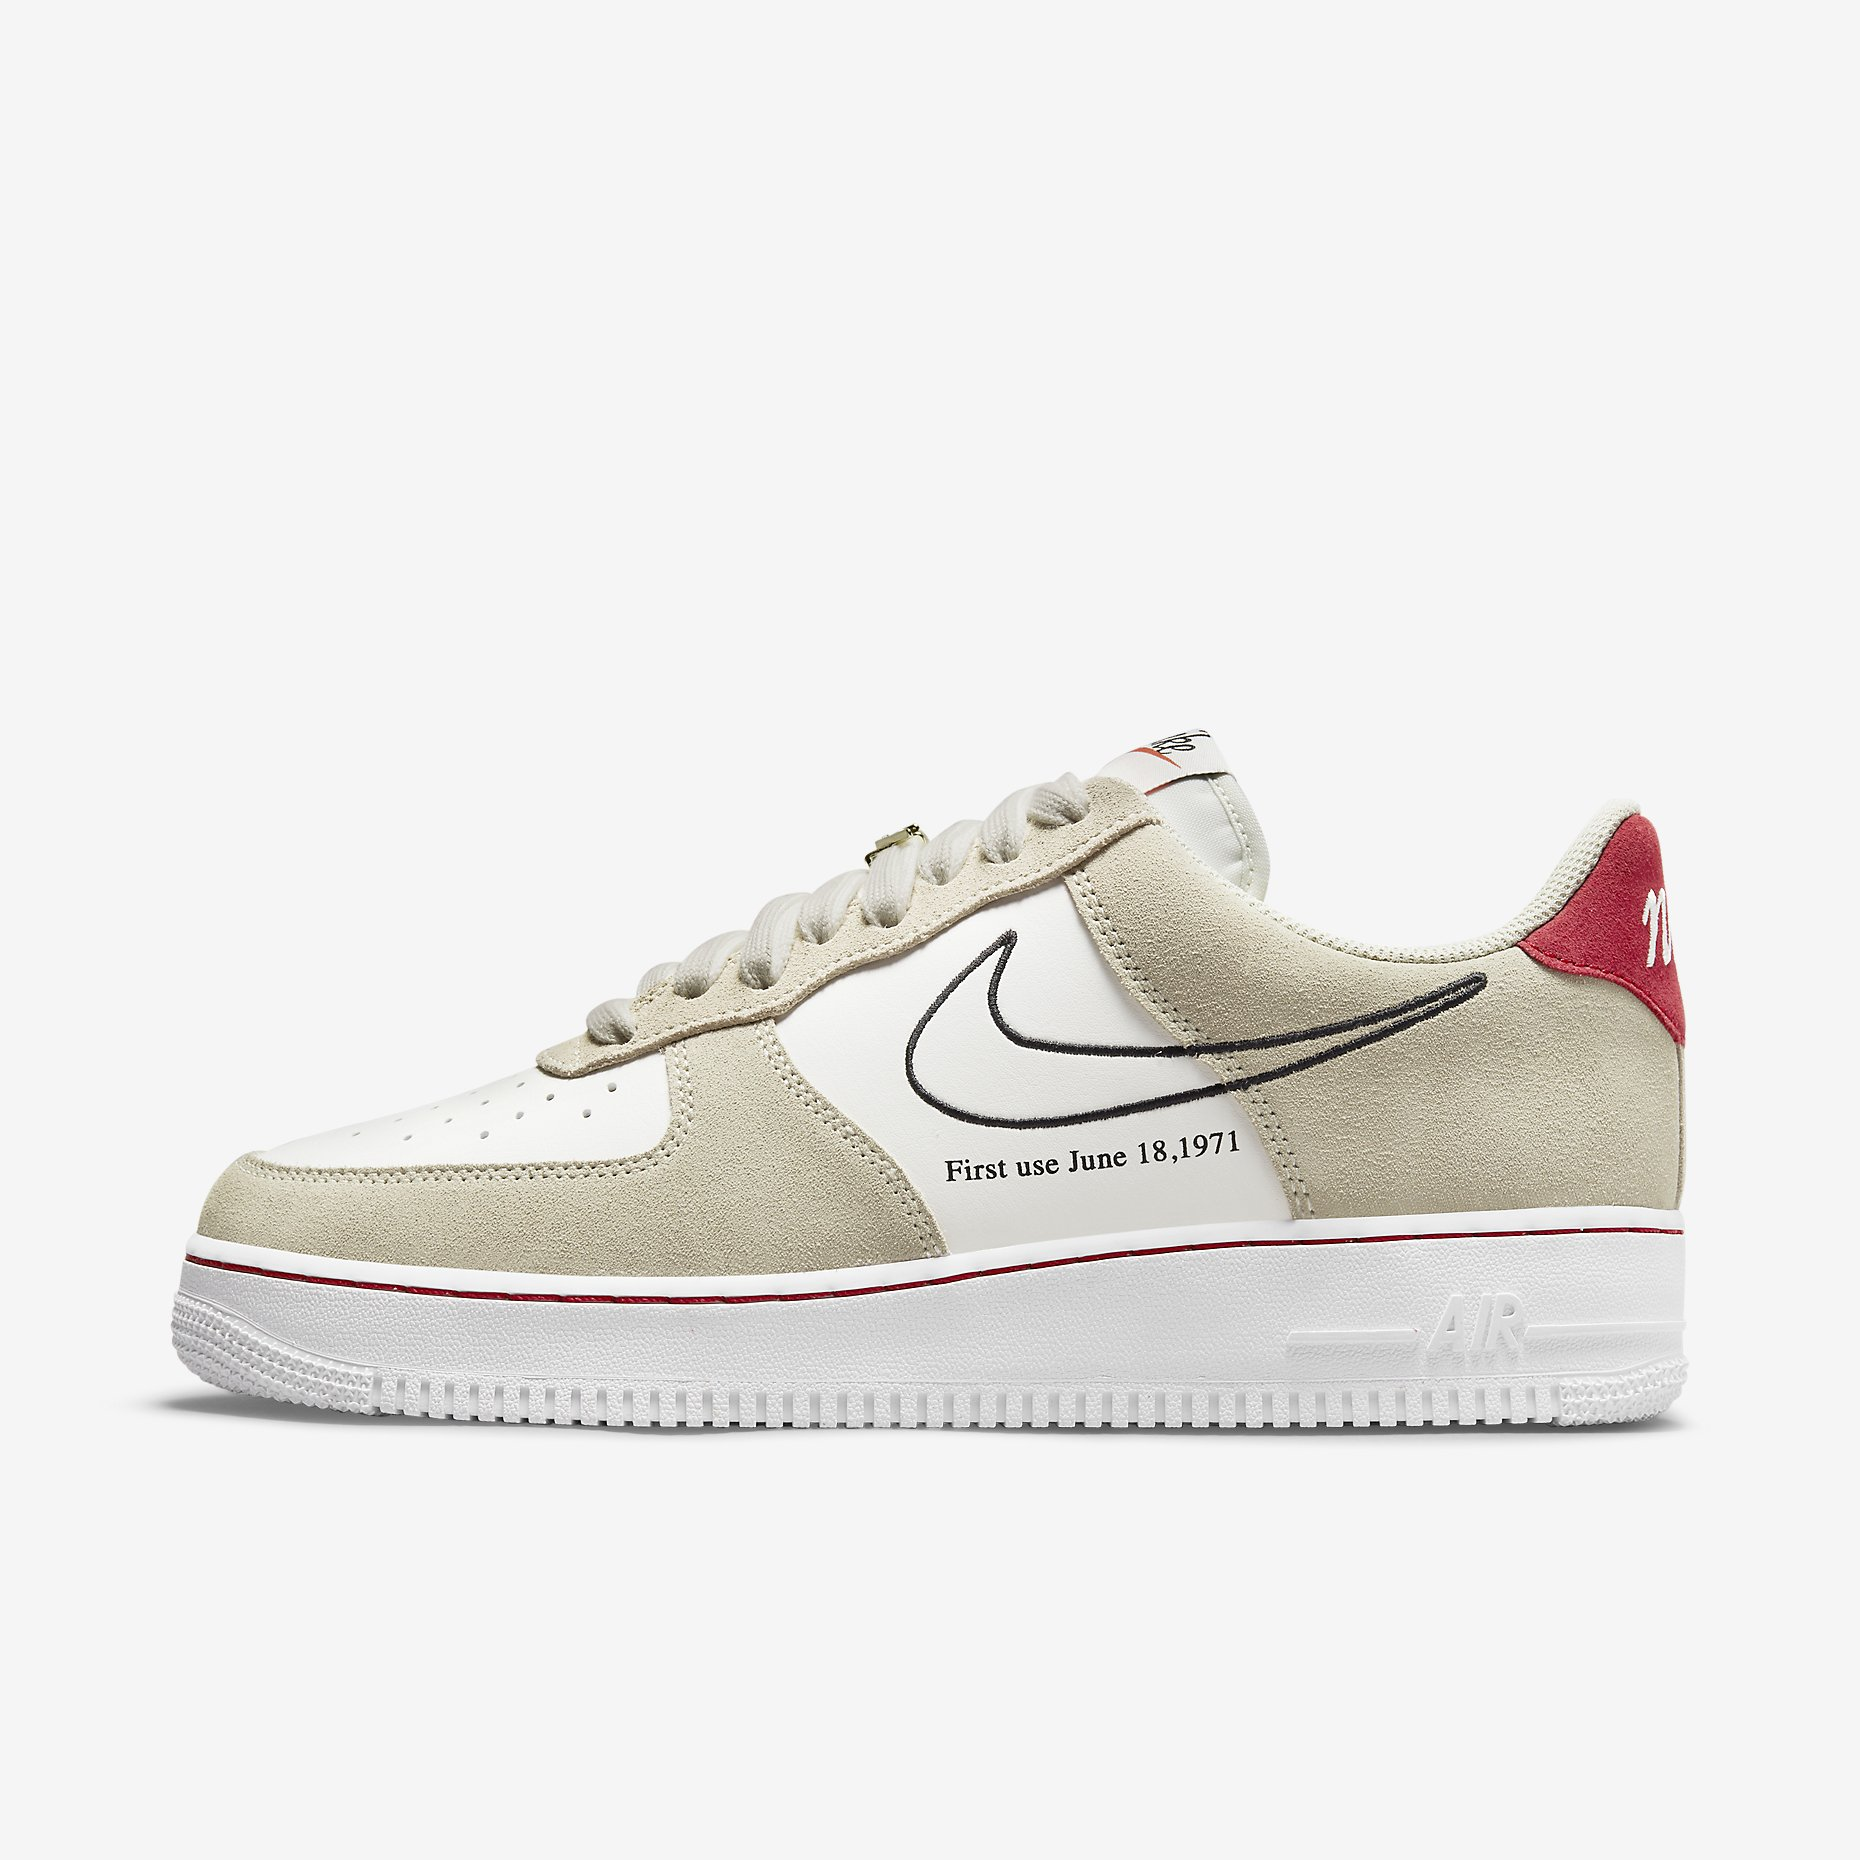 nike-air-force-1-07-lv8-light-stone---first-use-db3597-1009